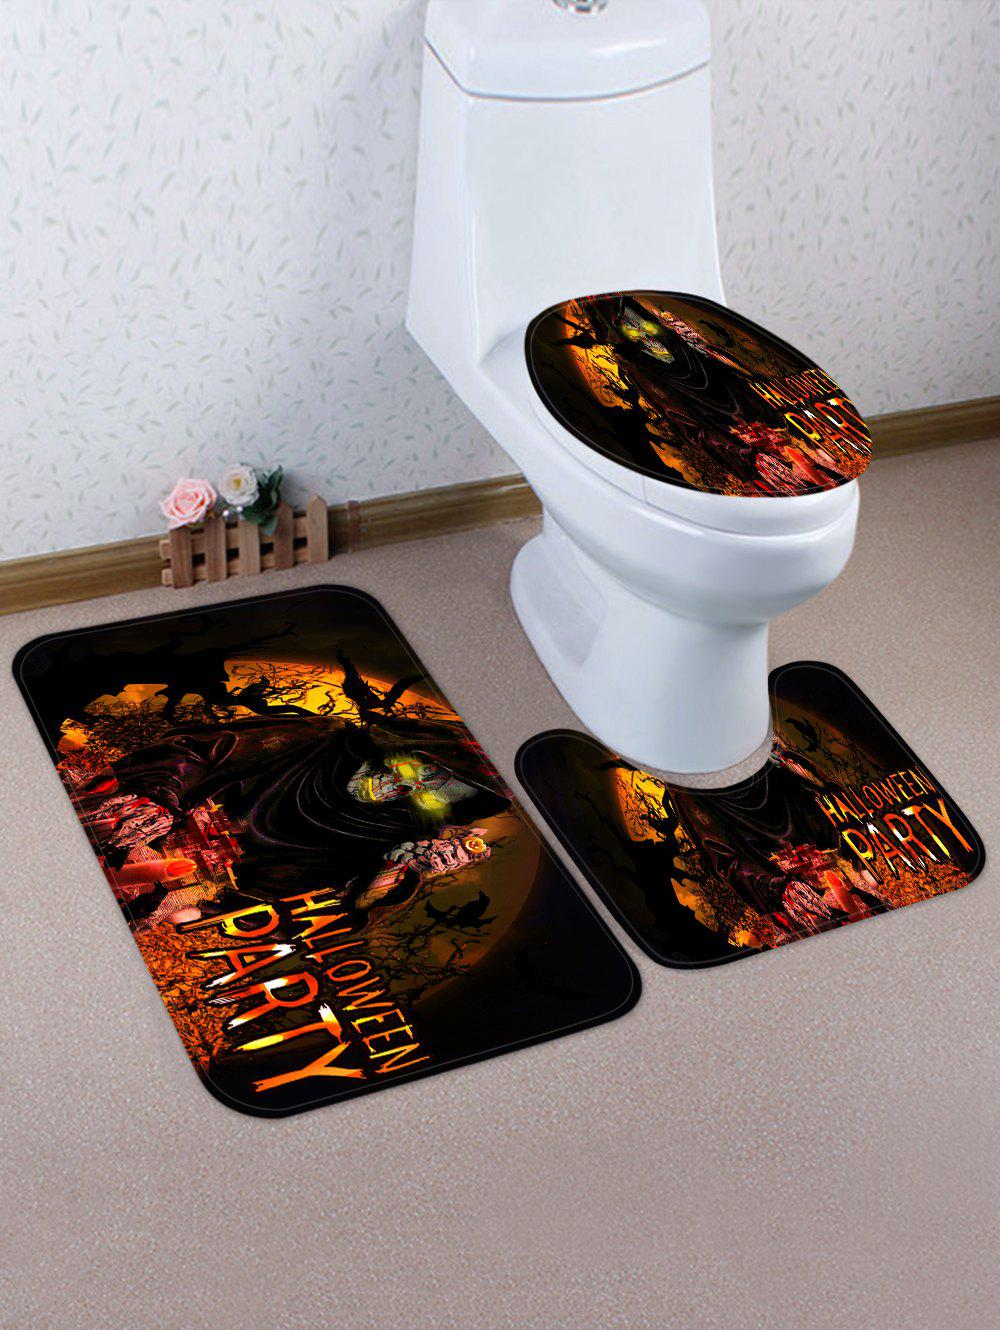 3 Pièces Tapis de Toilette et de Bain Motif La Mort et Inscription Halloween Party